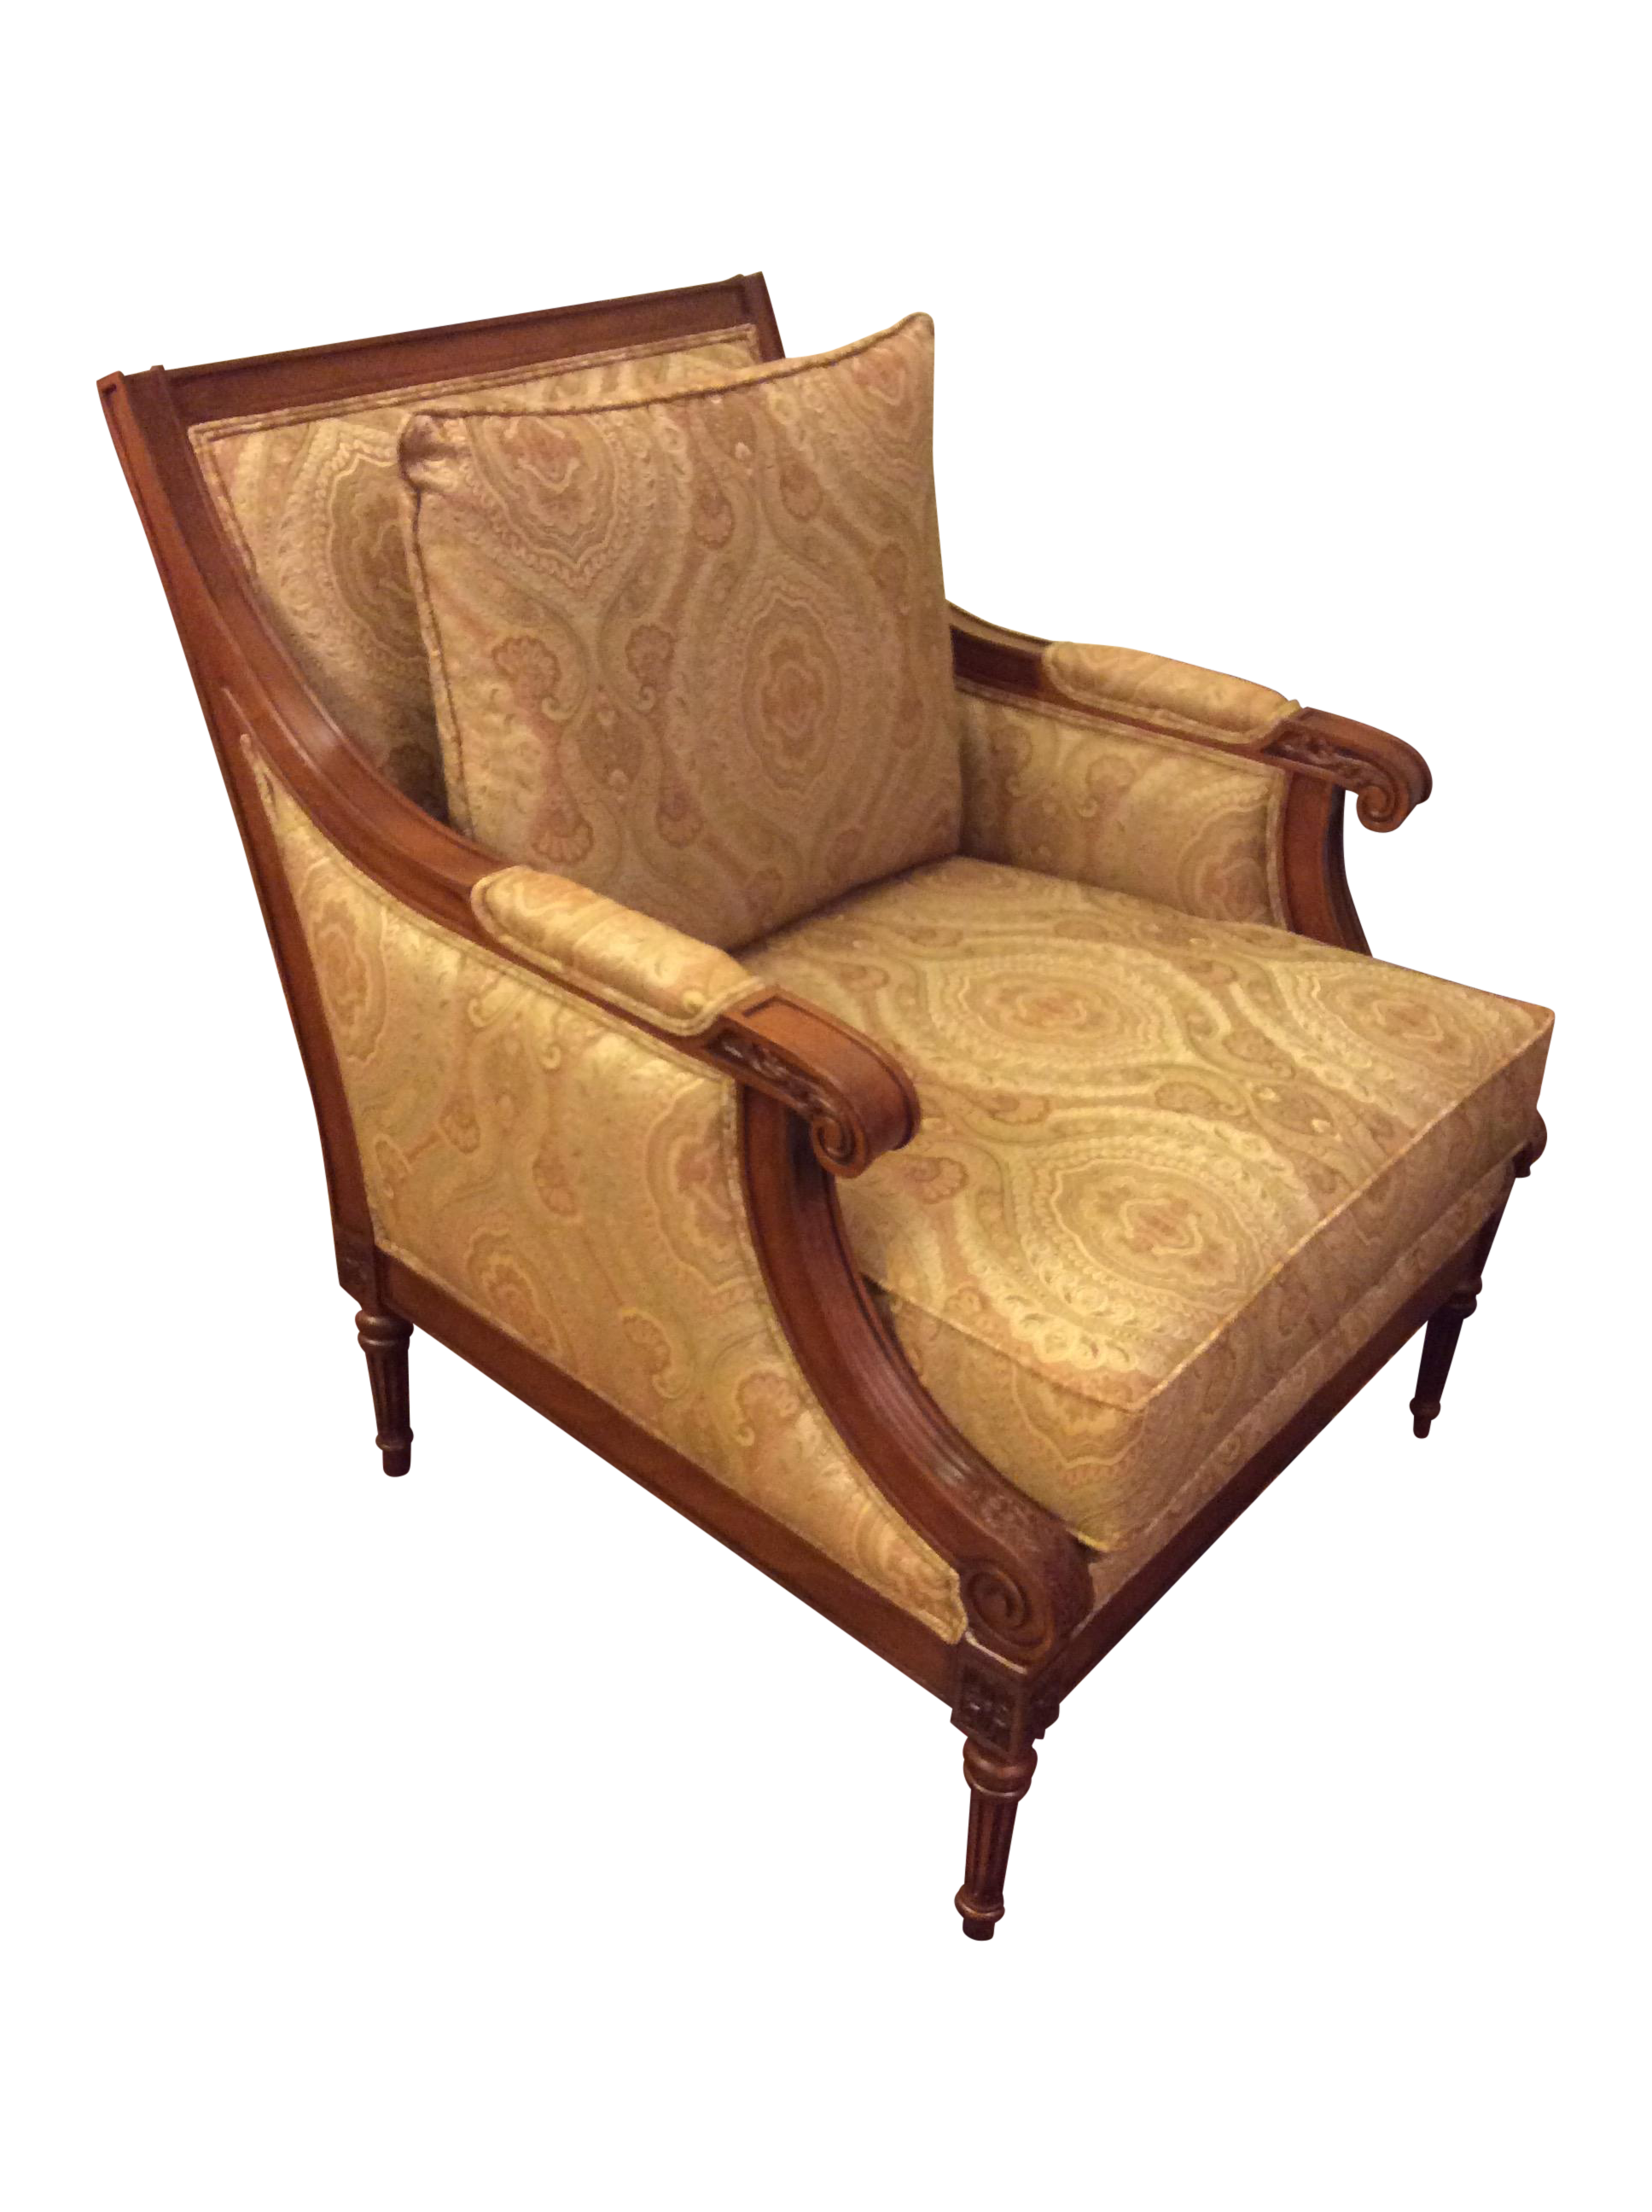 Ethan Allen Club Chairs Ethan Allen Fairfax Chair On Chairish 350 Comfy Chairs